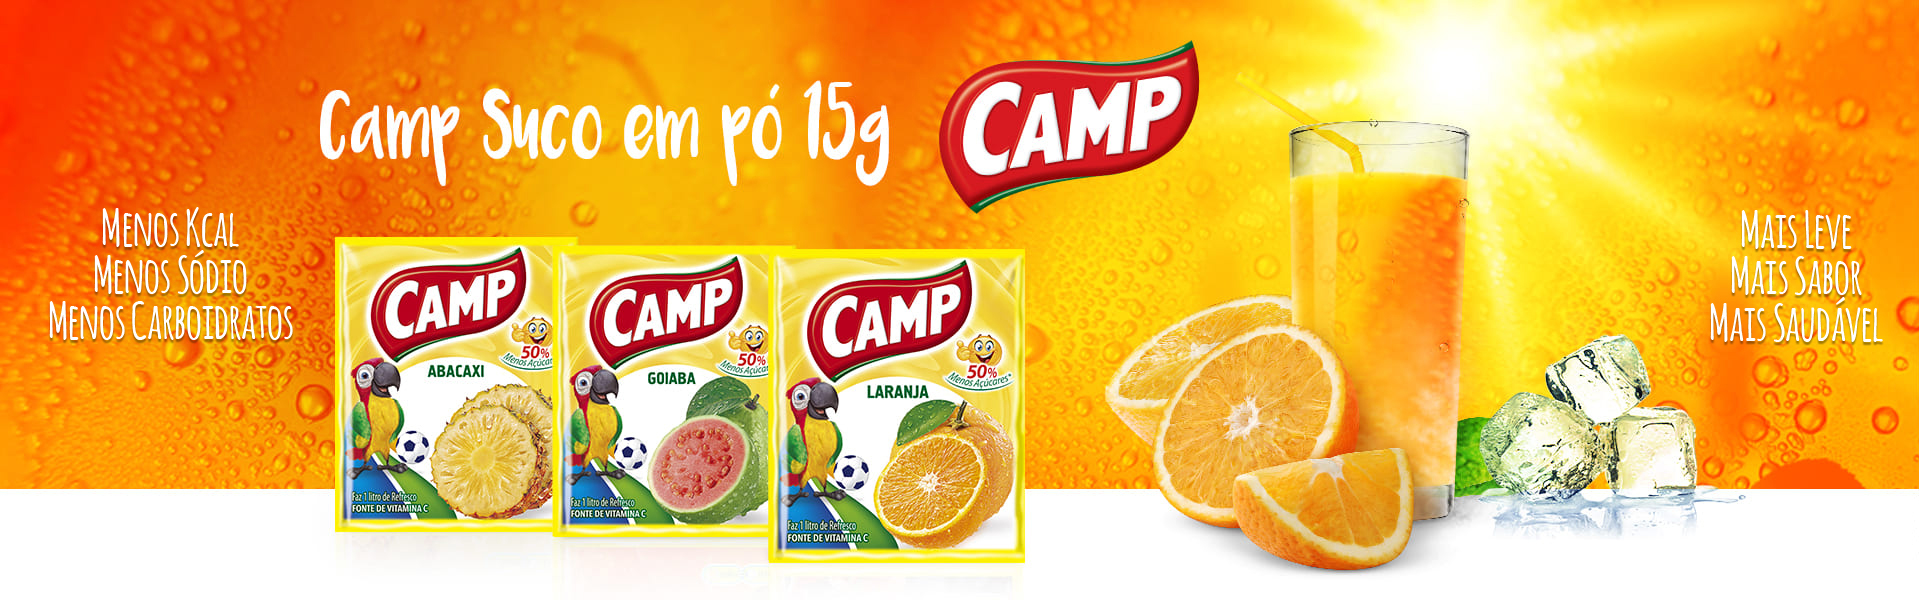 Refresco Camp - 15g